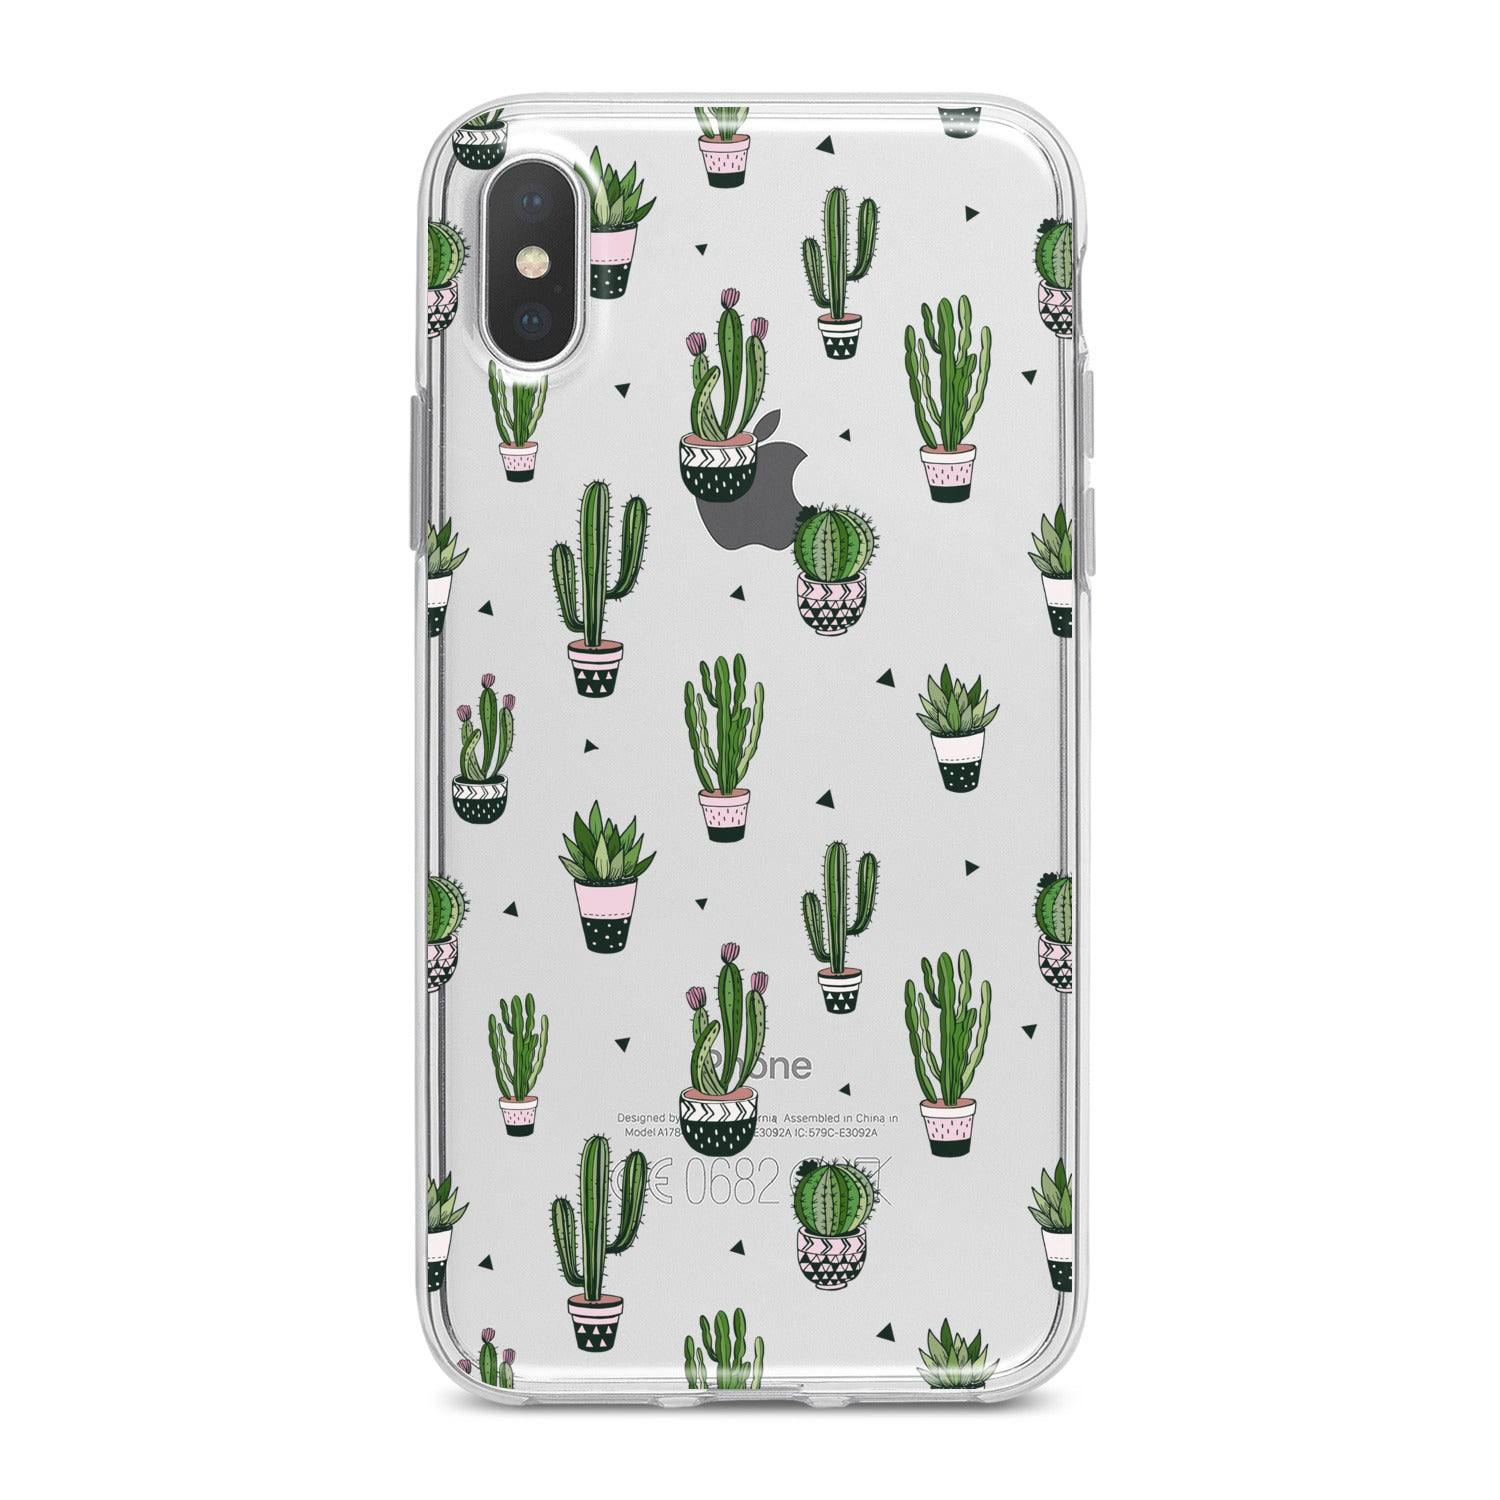 Lex Altern Simple Green Cactus Phone Case for your iPhone & Android phone.